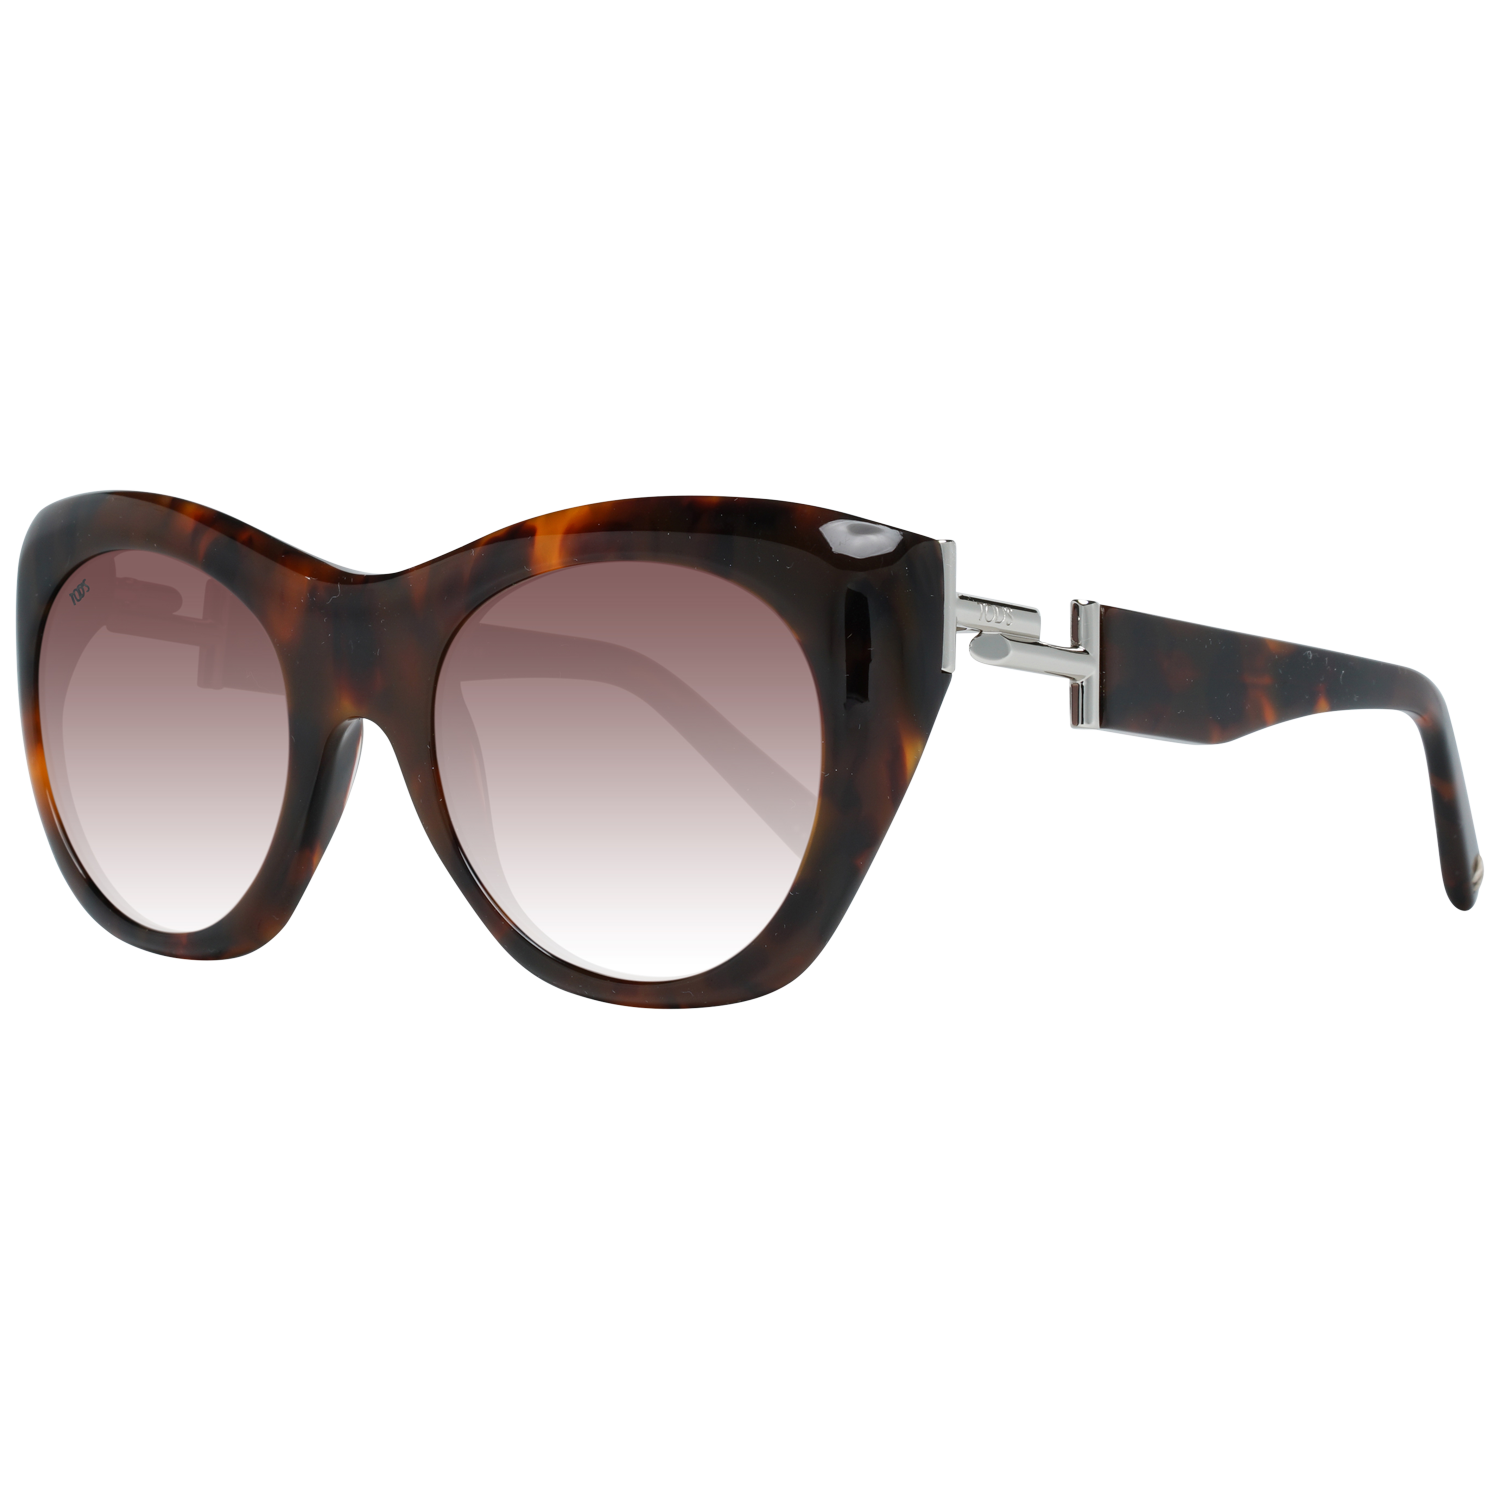 Tods Sunglasses TO0214 56F 51 Brown